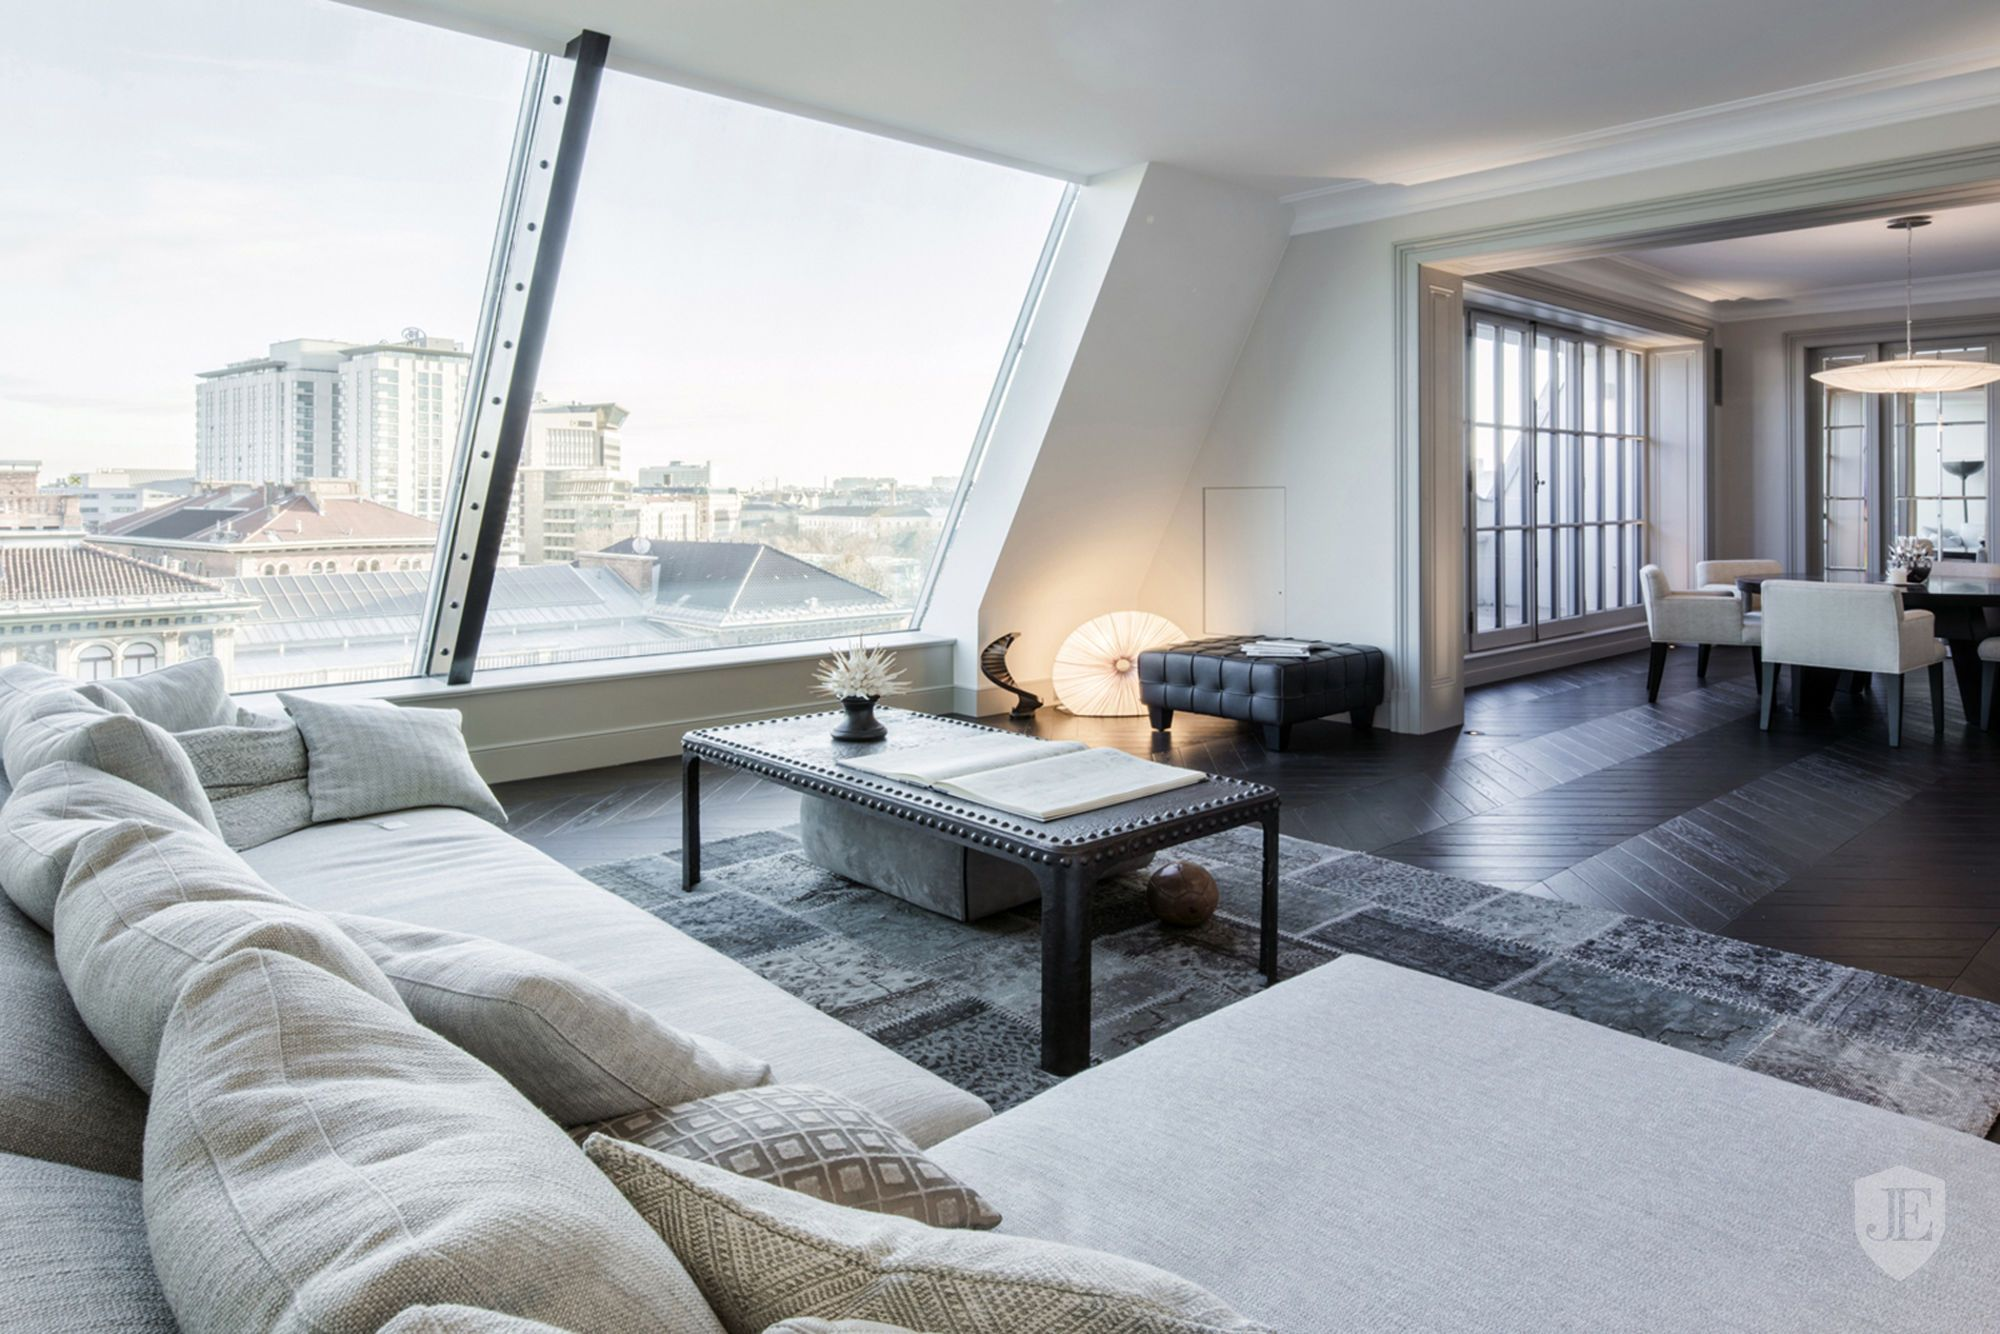 Badezimmerplanung Wien Extravagant 4 Bed Penthouse In Vienna Austria For Sale On